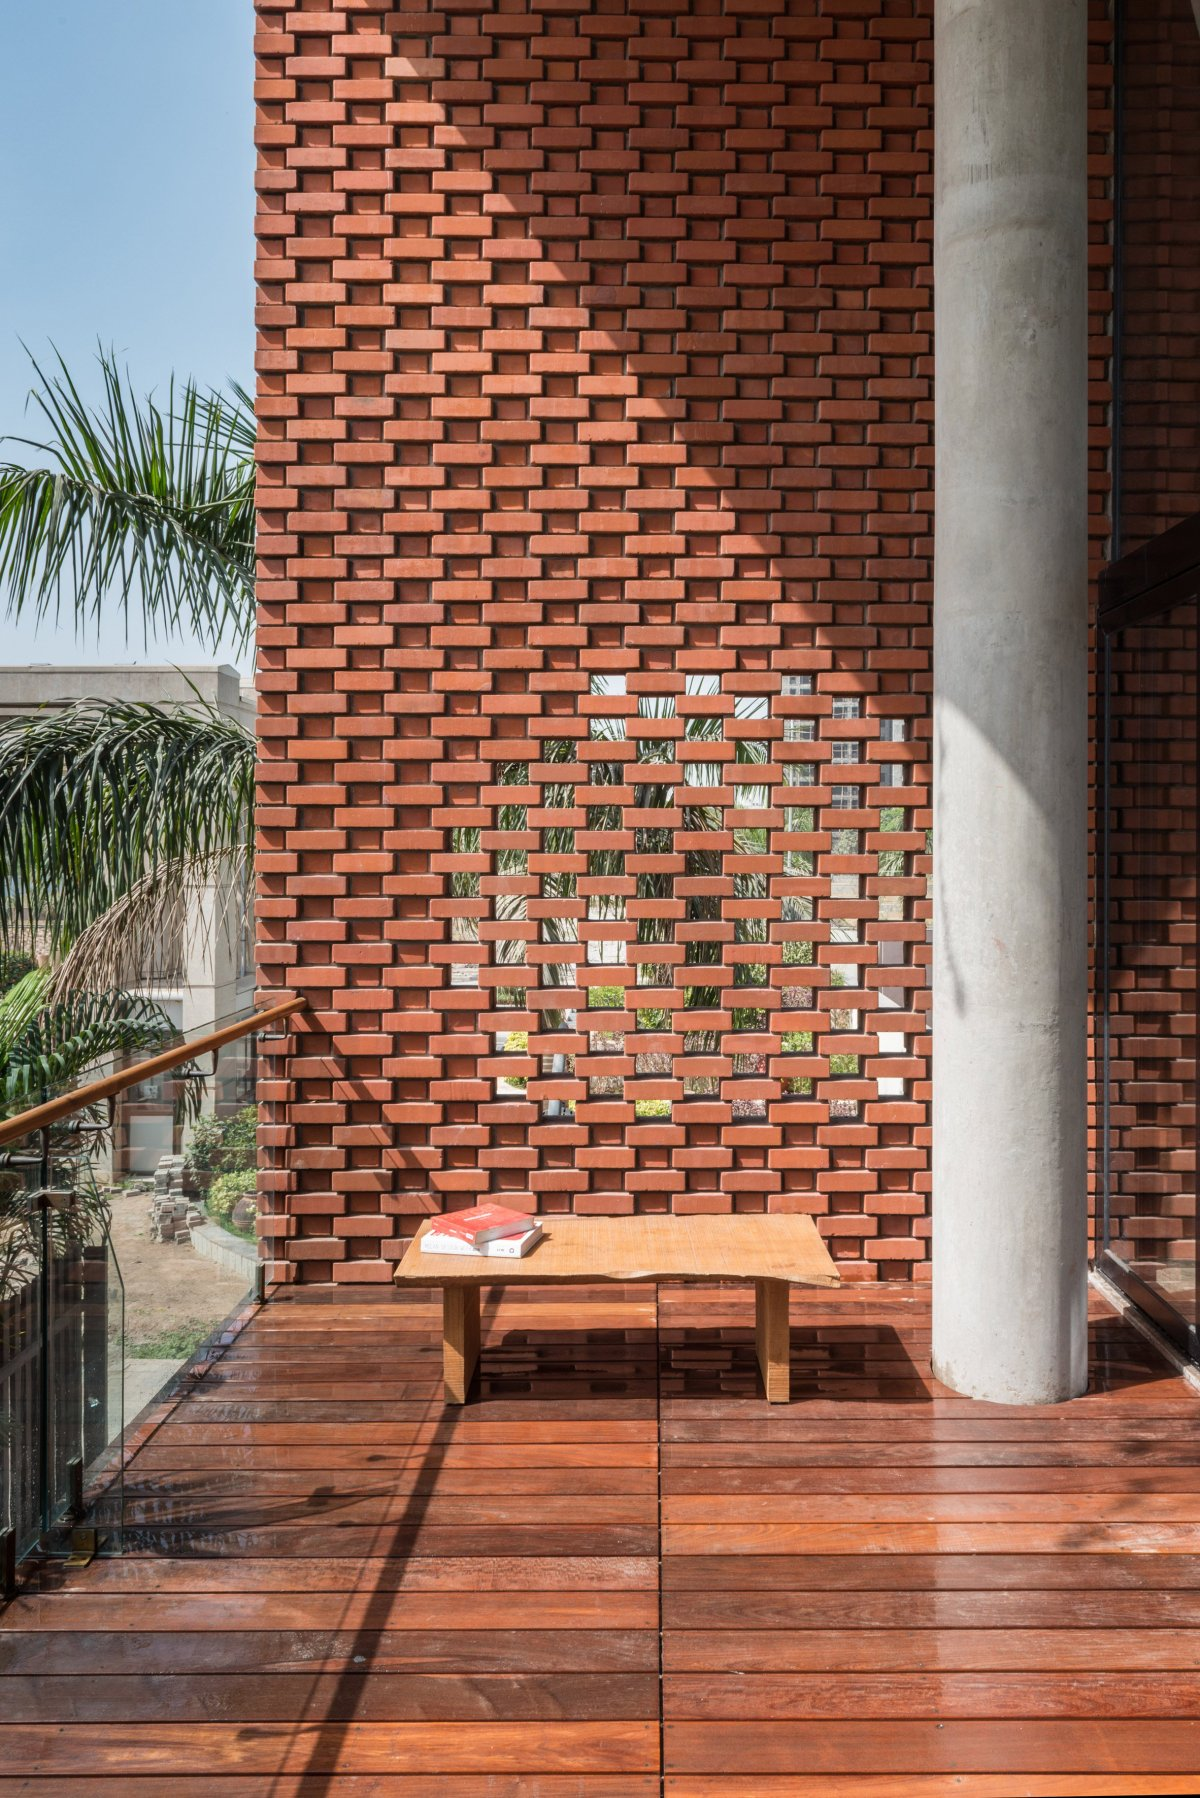 THE BRICK CURTAIN HOUSE IN INDIA BY DESIGN WORK GROUP